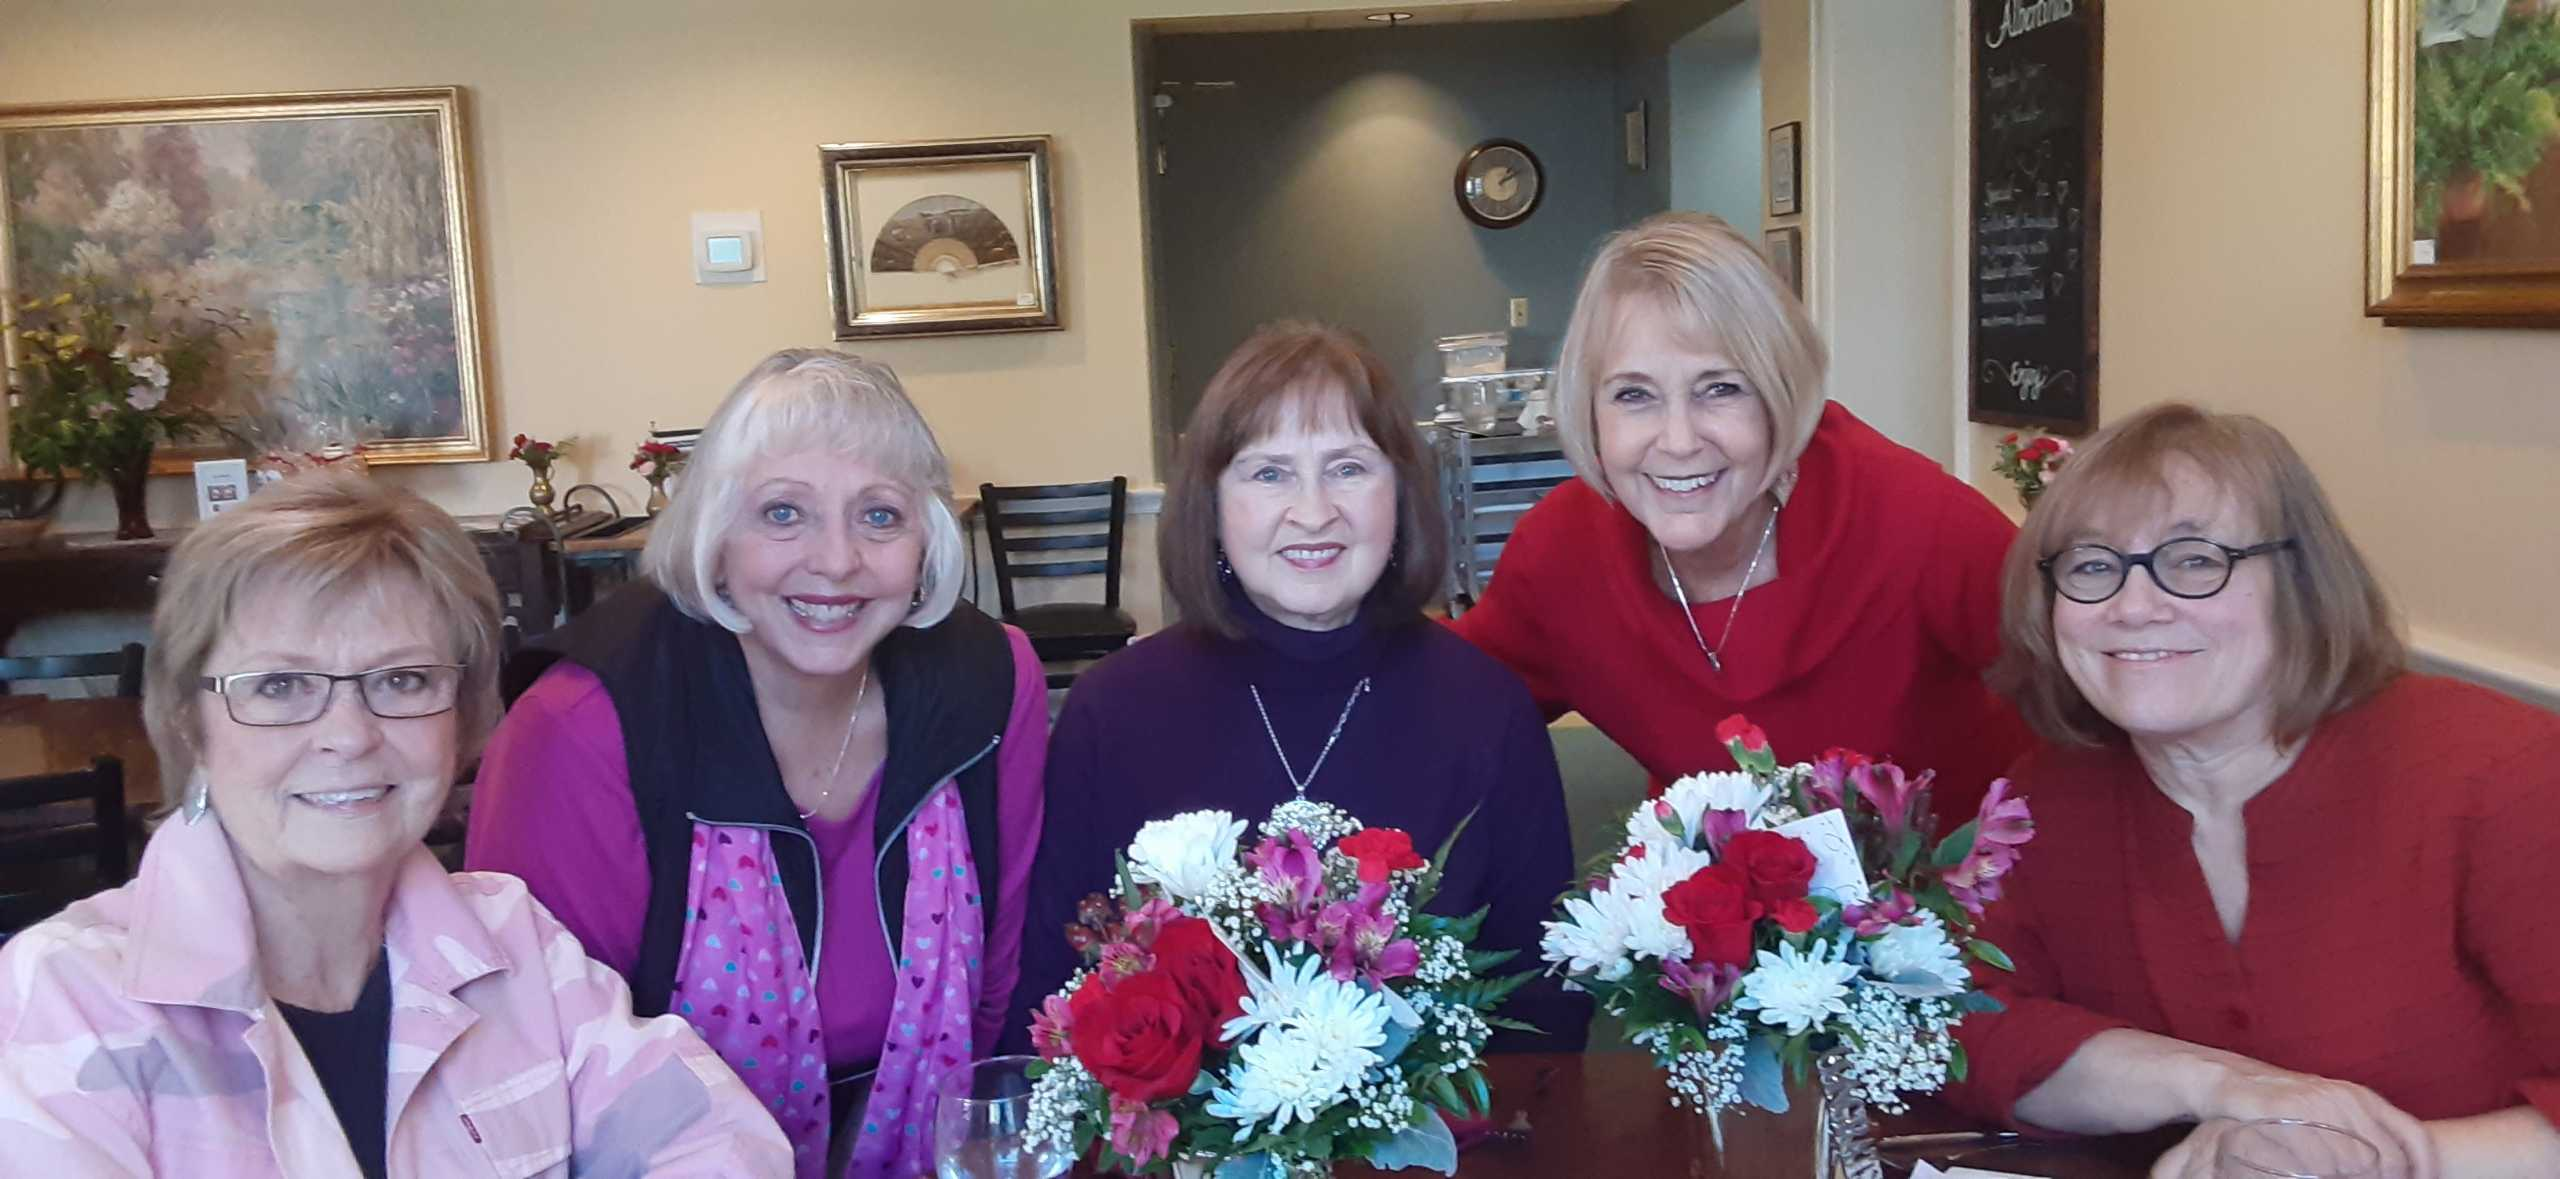 Karen Floyd (second from left) and Roe Ann Oberg (center) with past Lifetime Achievement honorees.